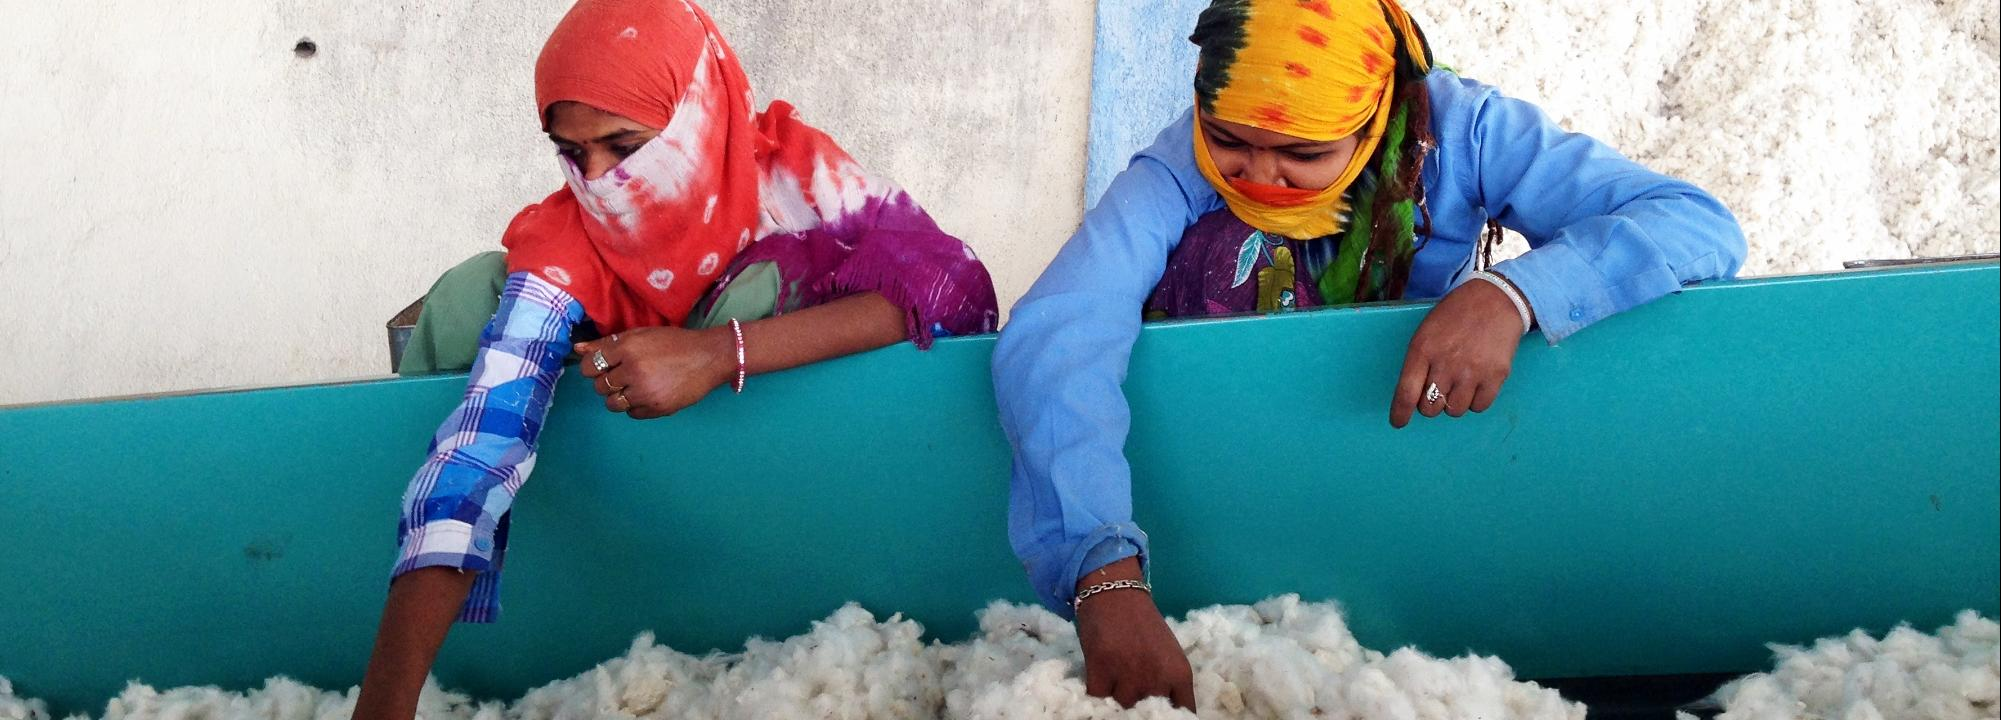 Cotton workers, India © Scott Exo, Better Cotton Initiative